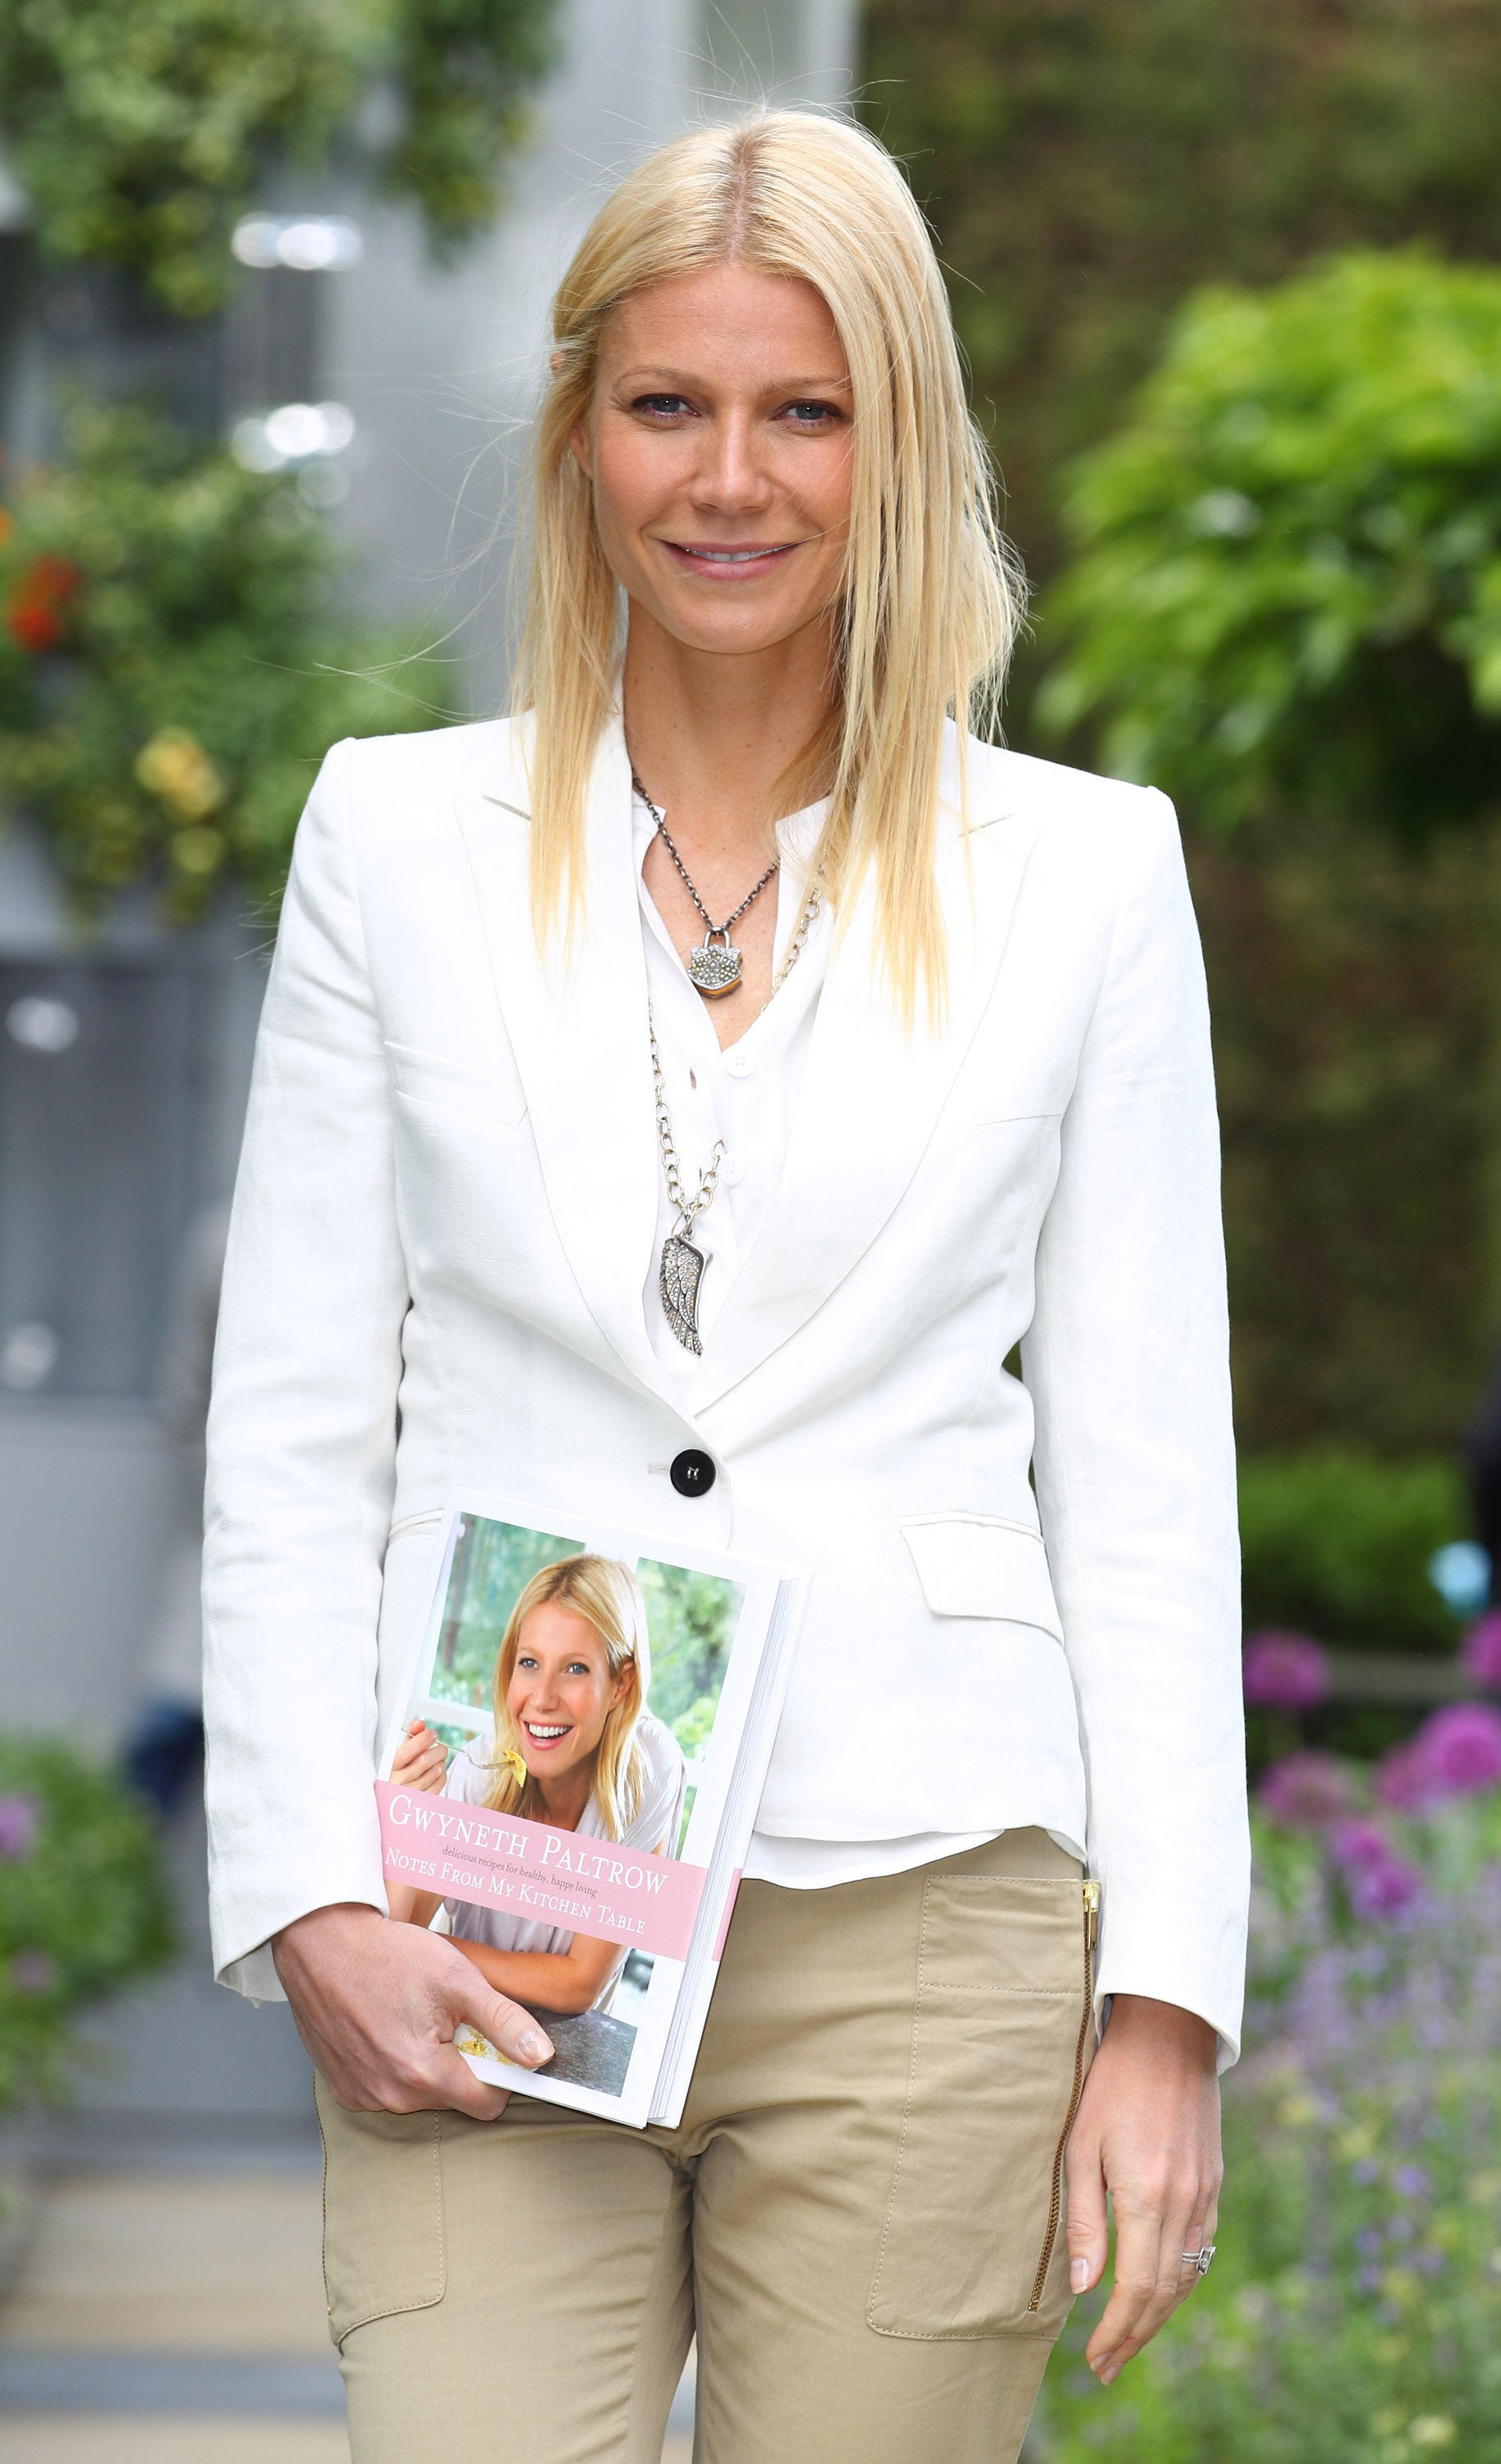 Celebrity Entertainment Gwyneth Paltrow Shares Notes From Her Kitchen Table At The Chelsea Flower Show Popsugar Celebrity Photo 9